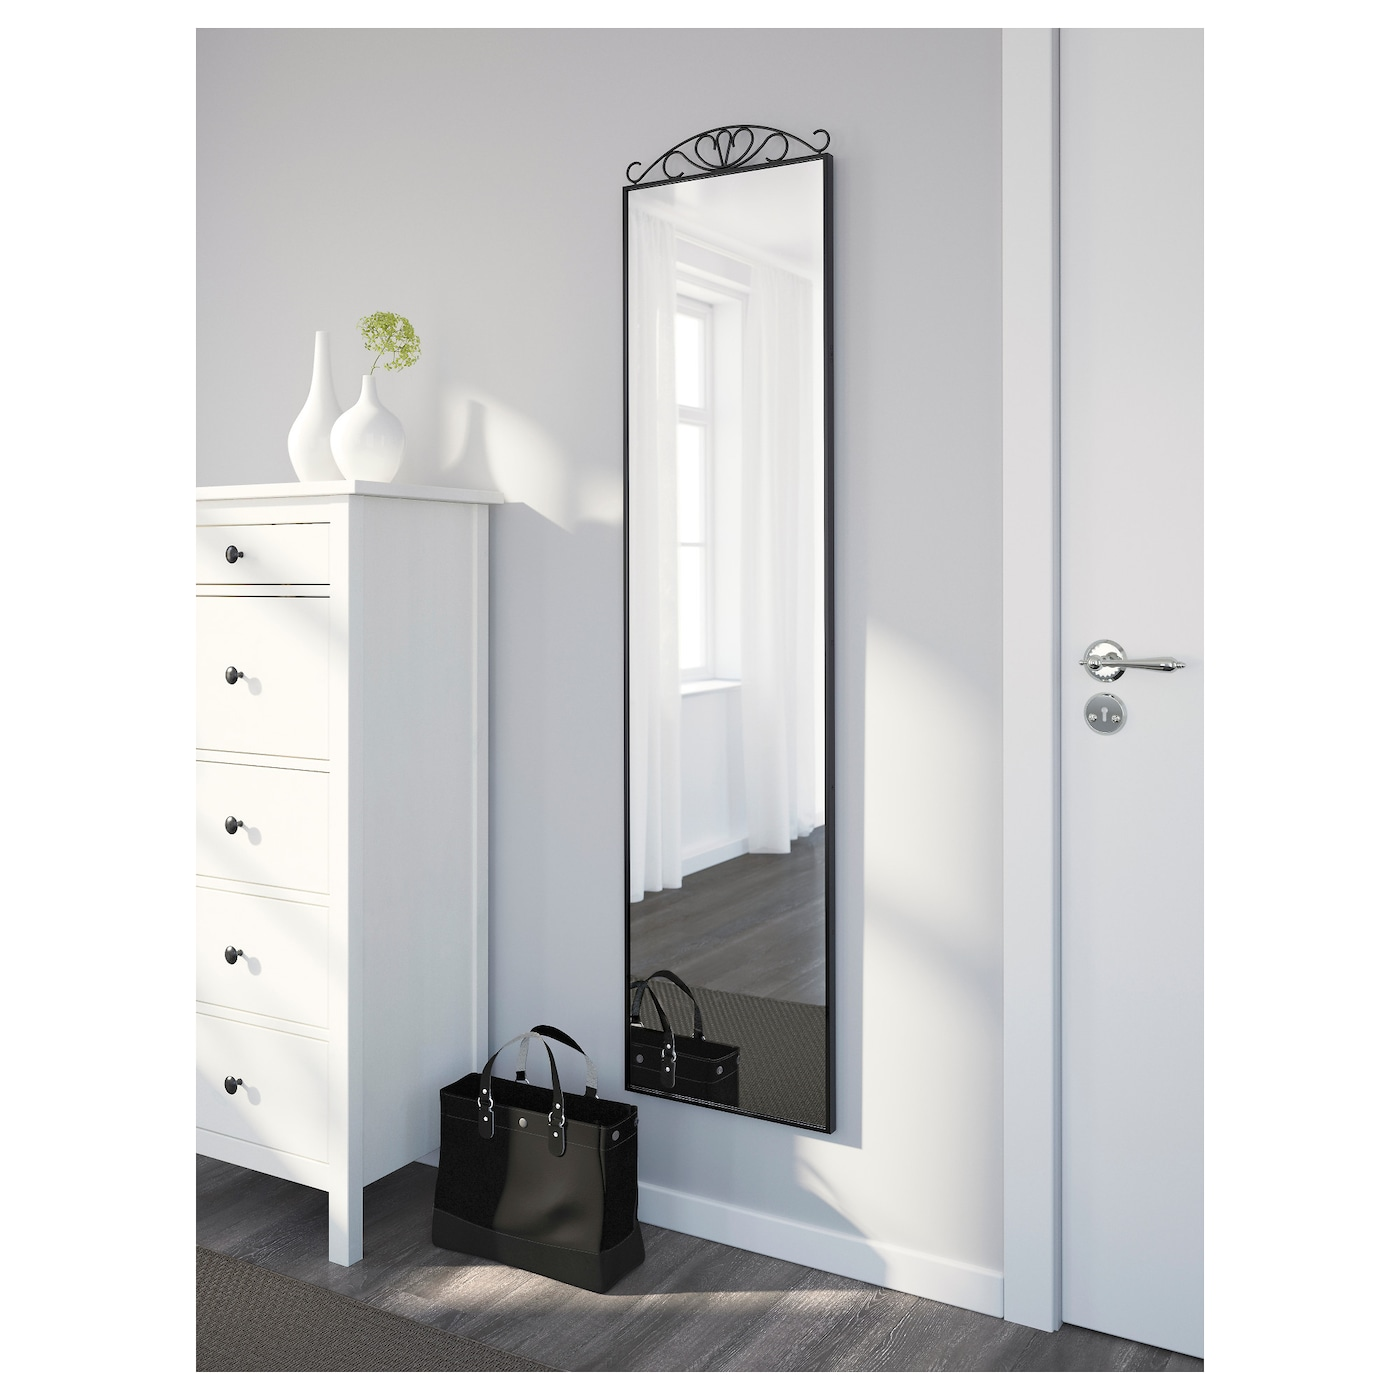 Karmsund standing mirror black 40x167 cm ikea ikea karmsund standing mirror you can place the mirror on the floor or hang it on amipublicfo Images